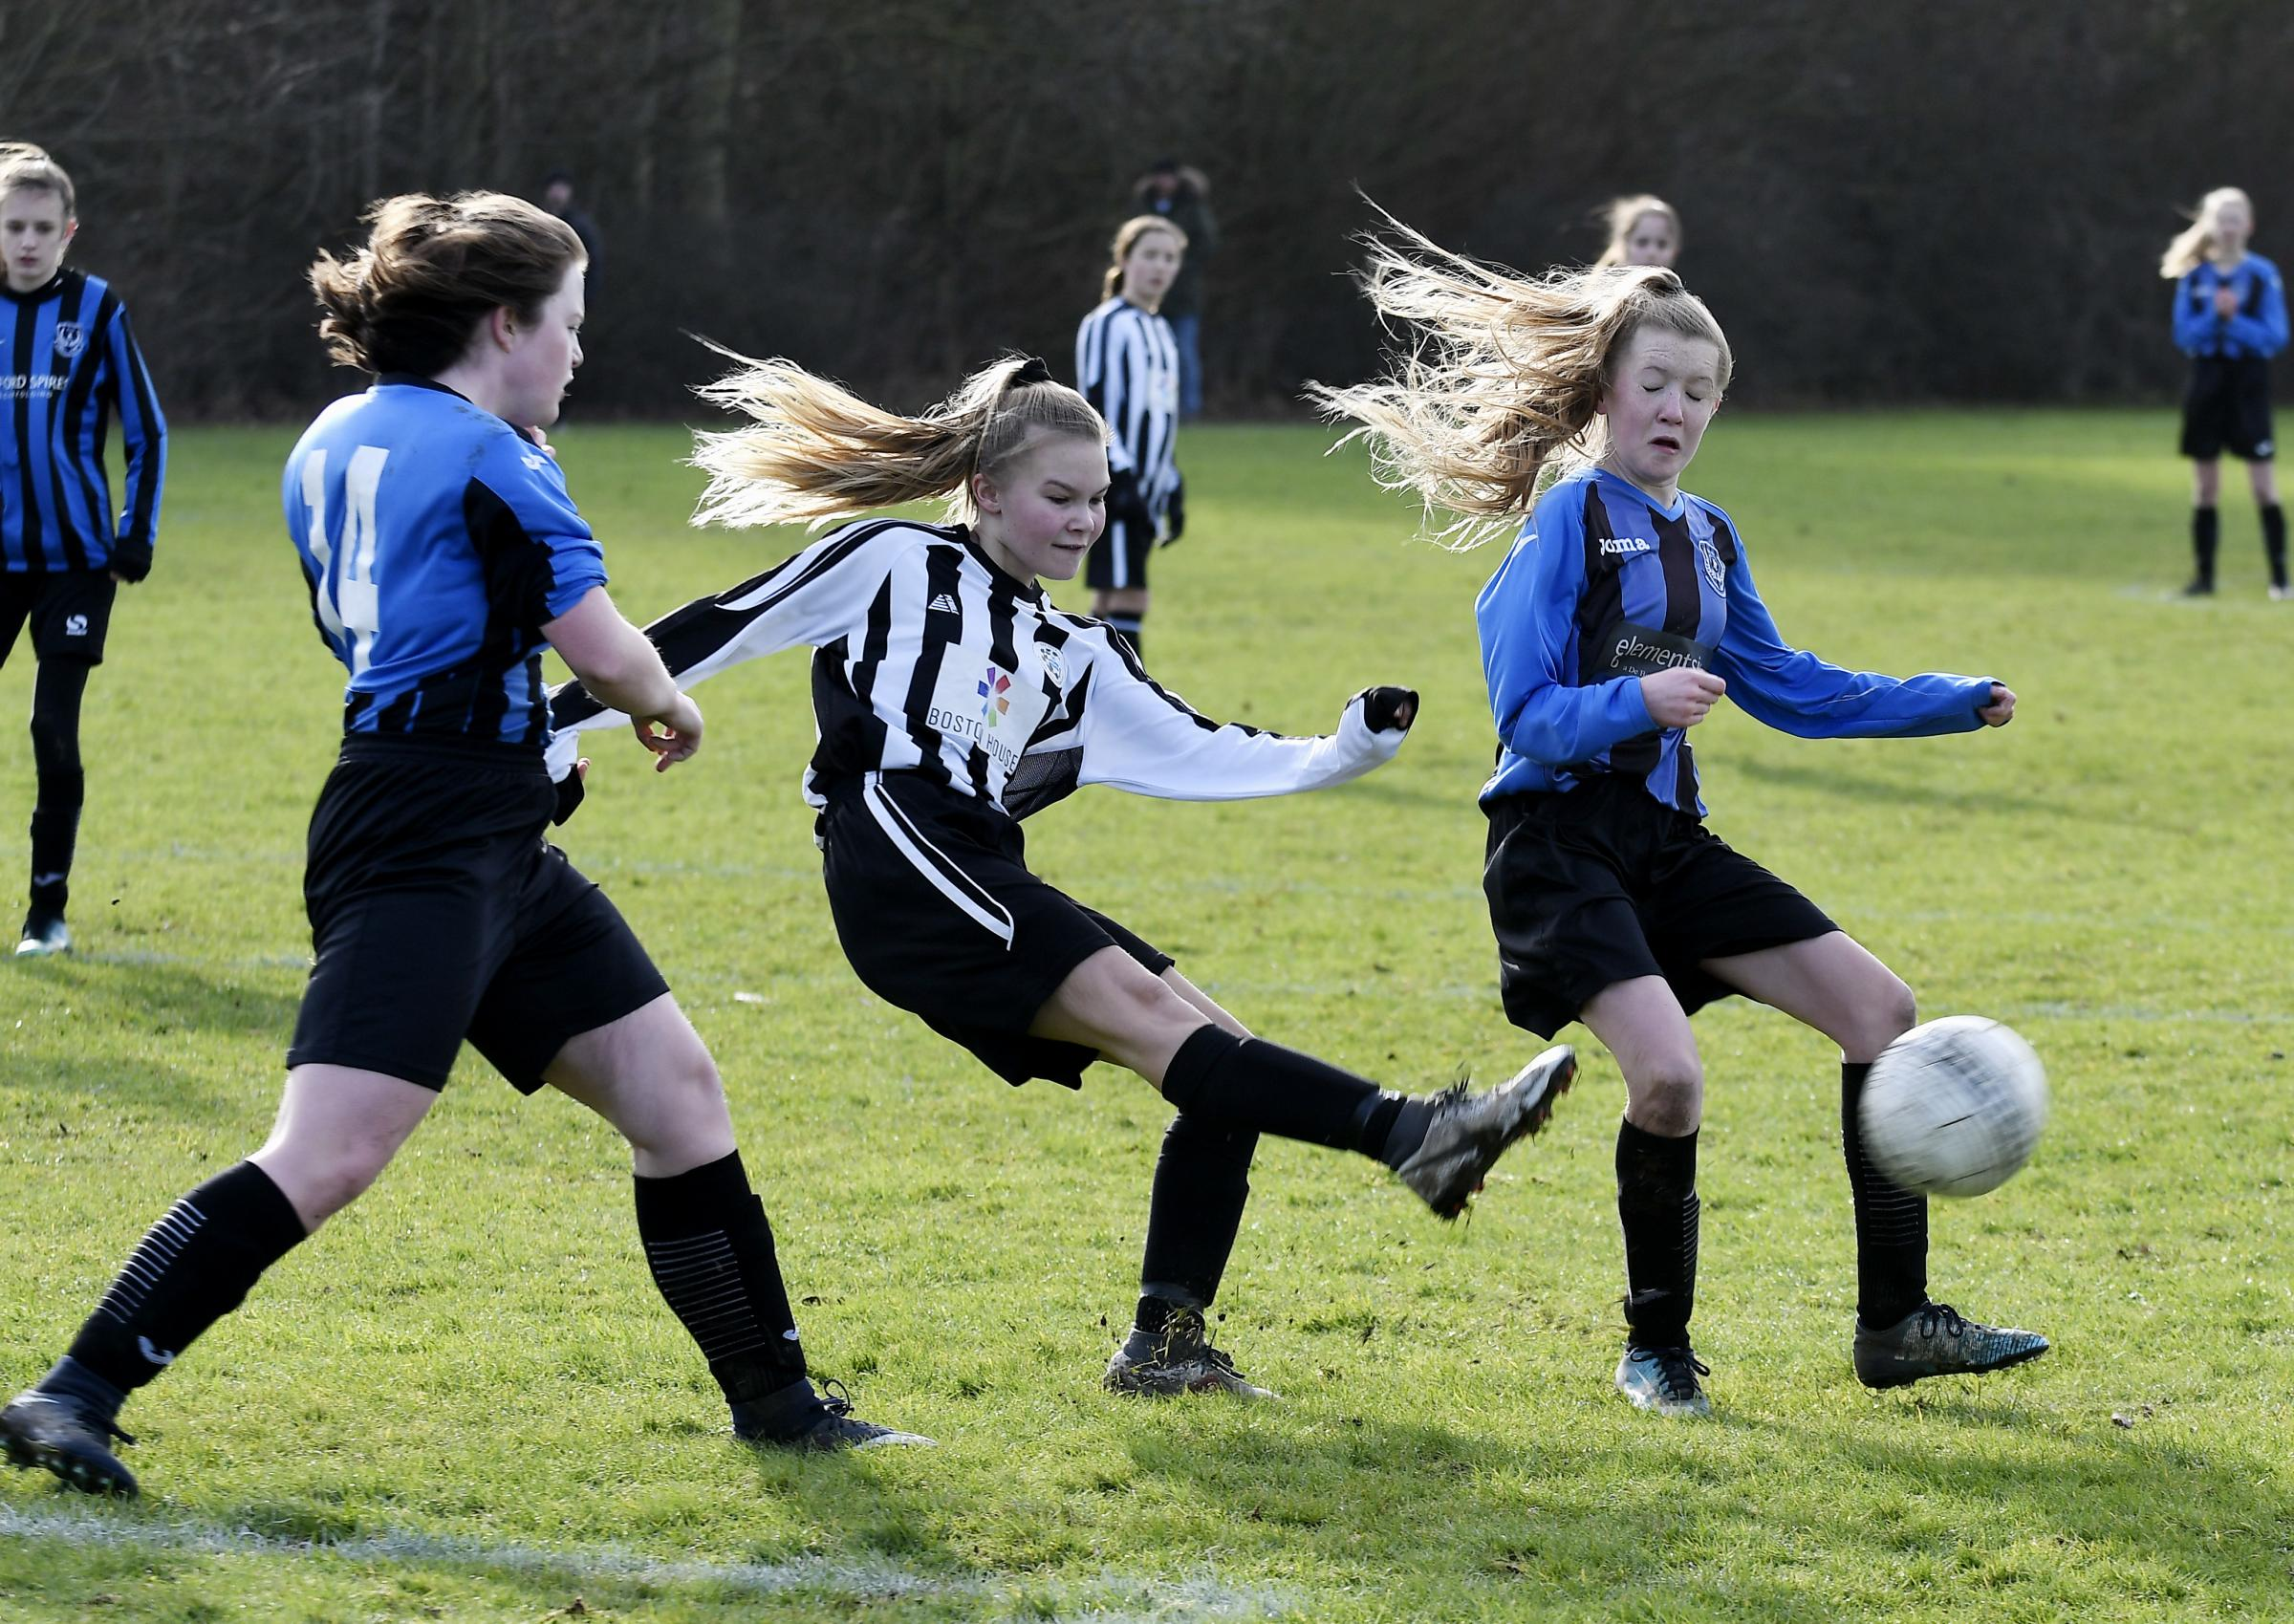 Harwell's Ellie White and Amber Hansen put pressure on Mya Stock as the Grove player shoots in their Under 15 clash Picture: David Fleming